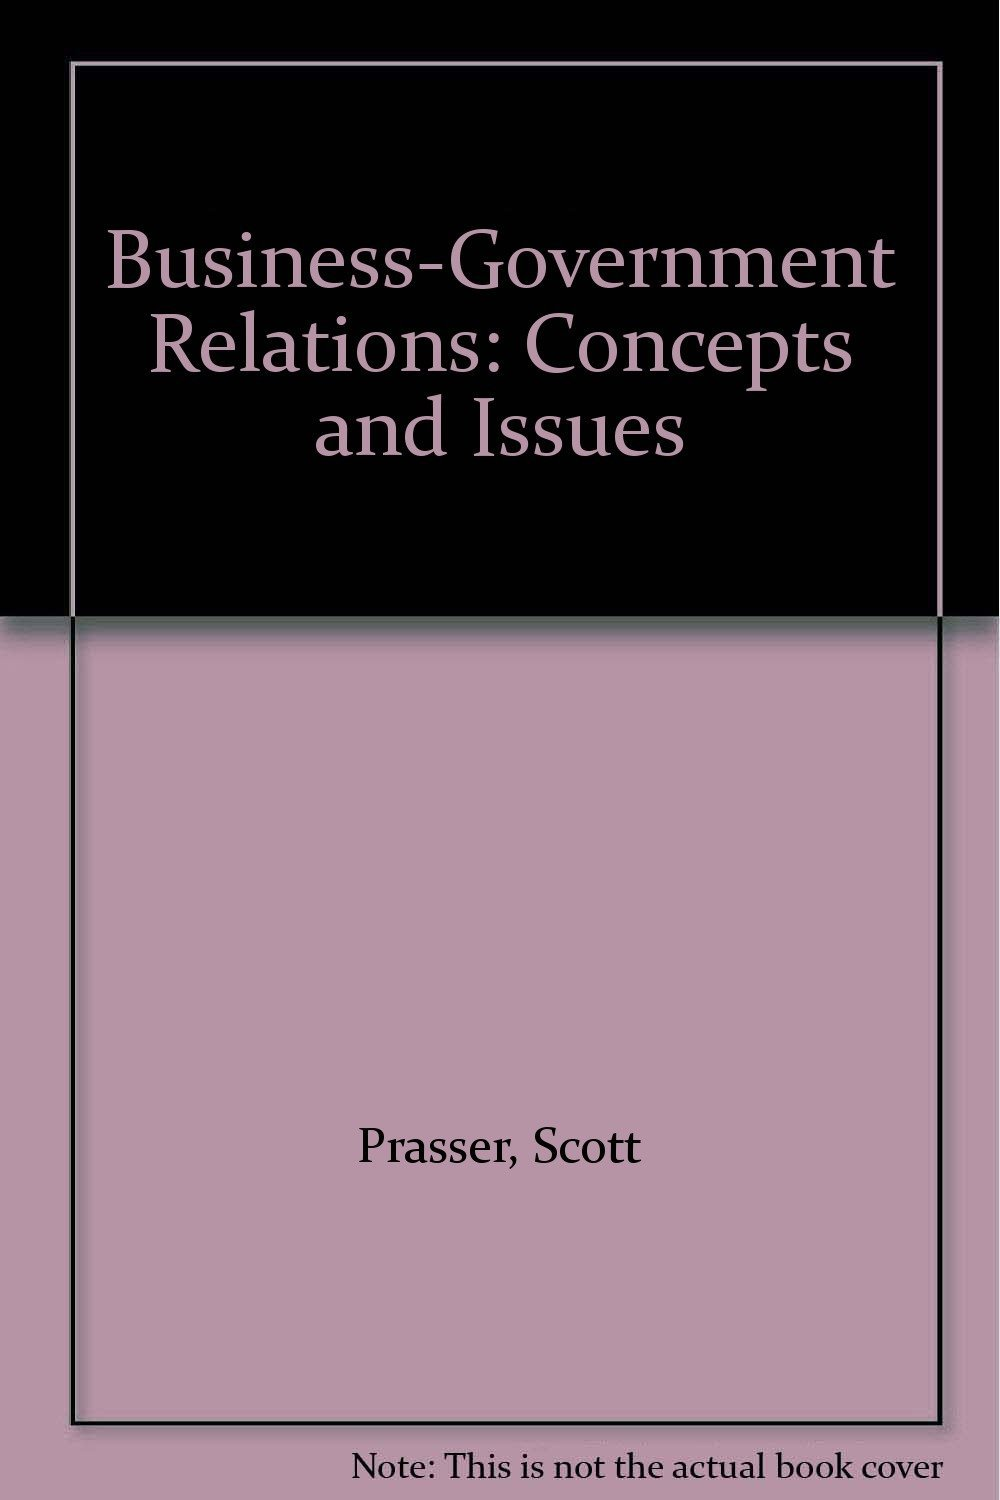 Business-Government Relations: Concepts and Issues